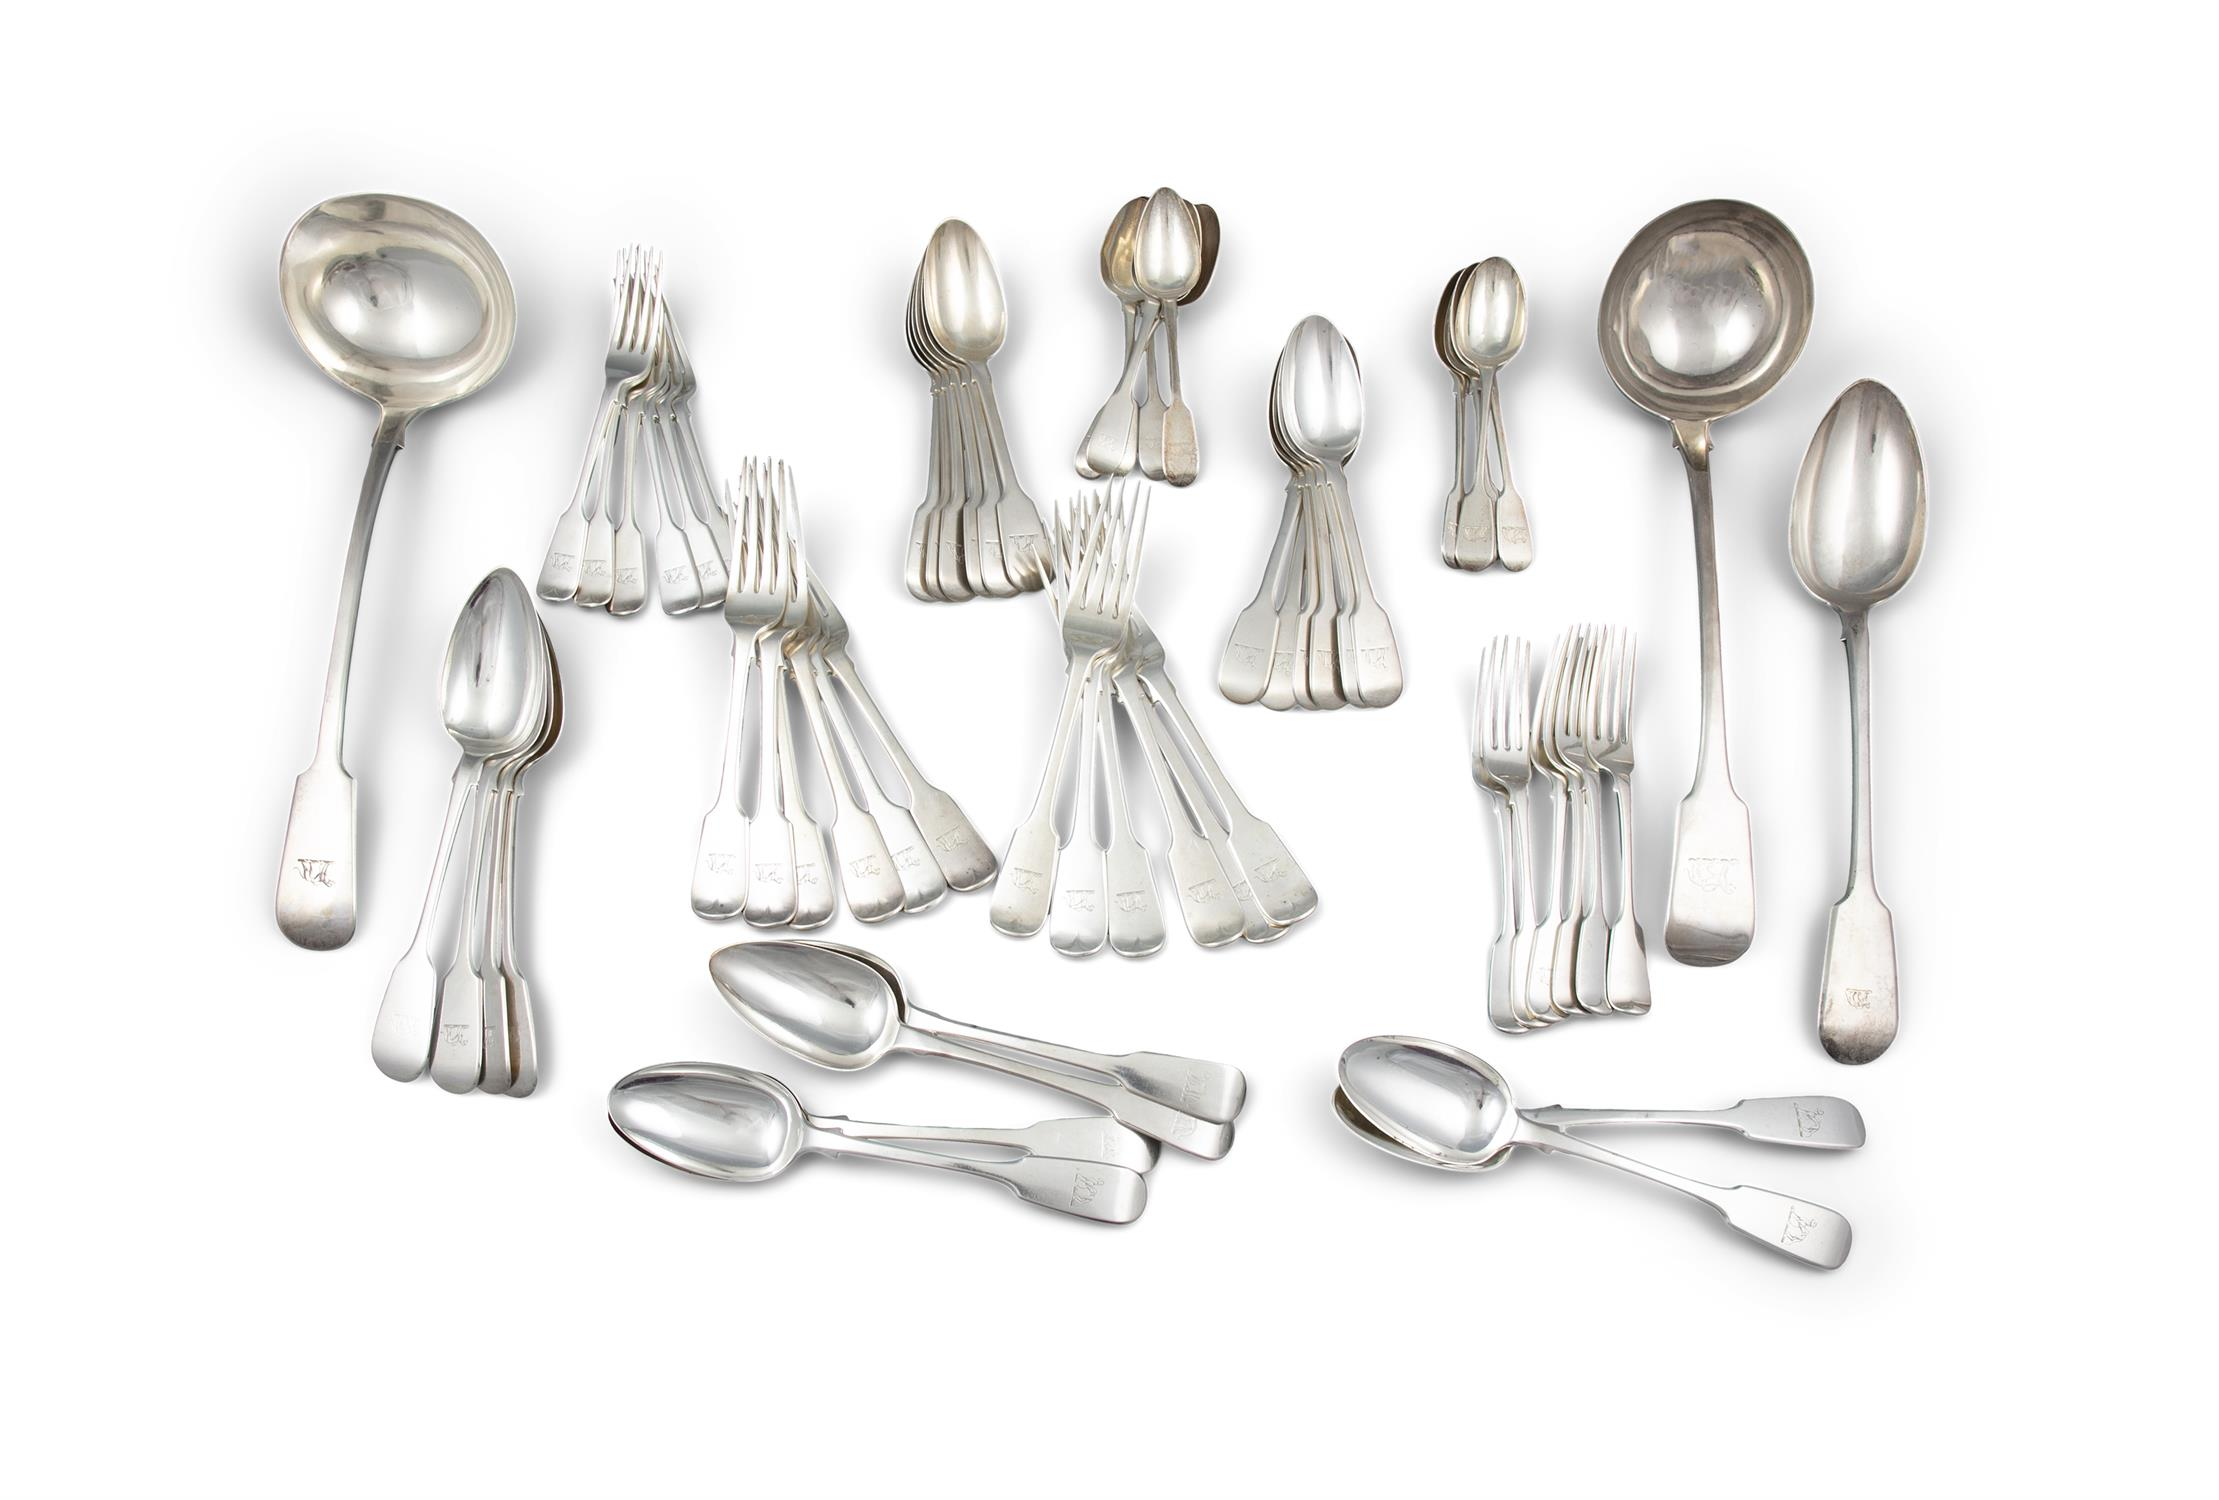 A MATCHED SET OF FIDDLE PATTERN SILVER FLATWARE, London, of various dates and makers,